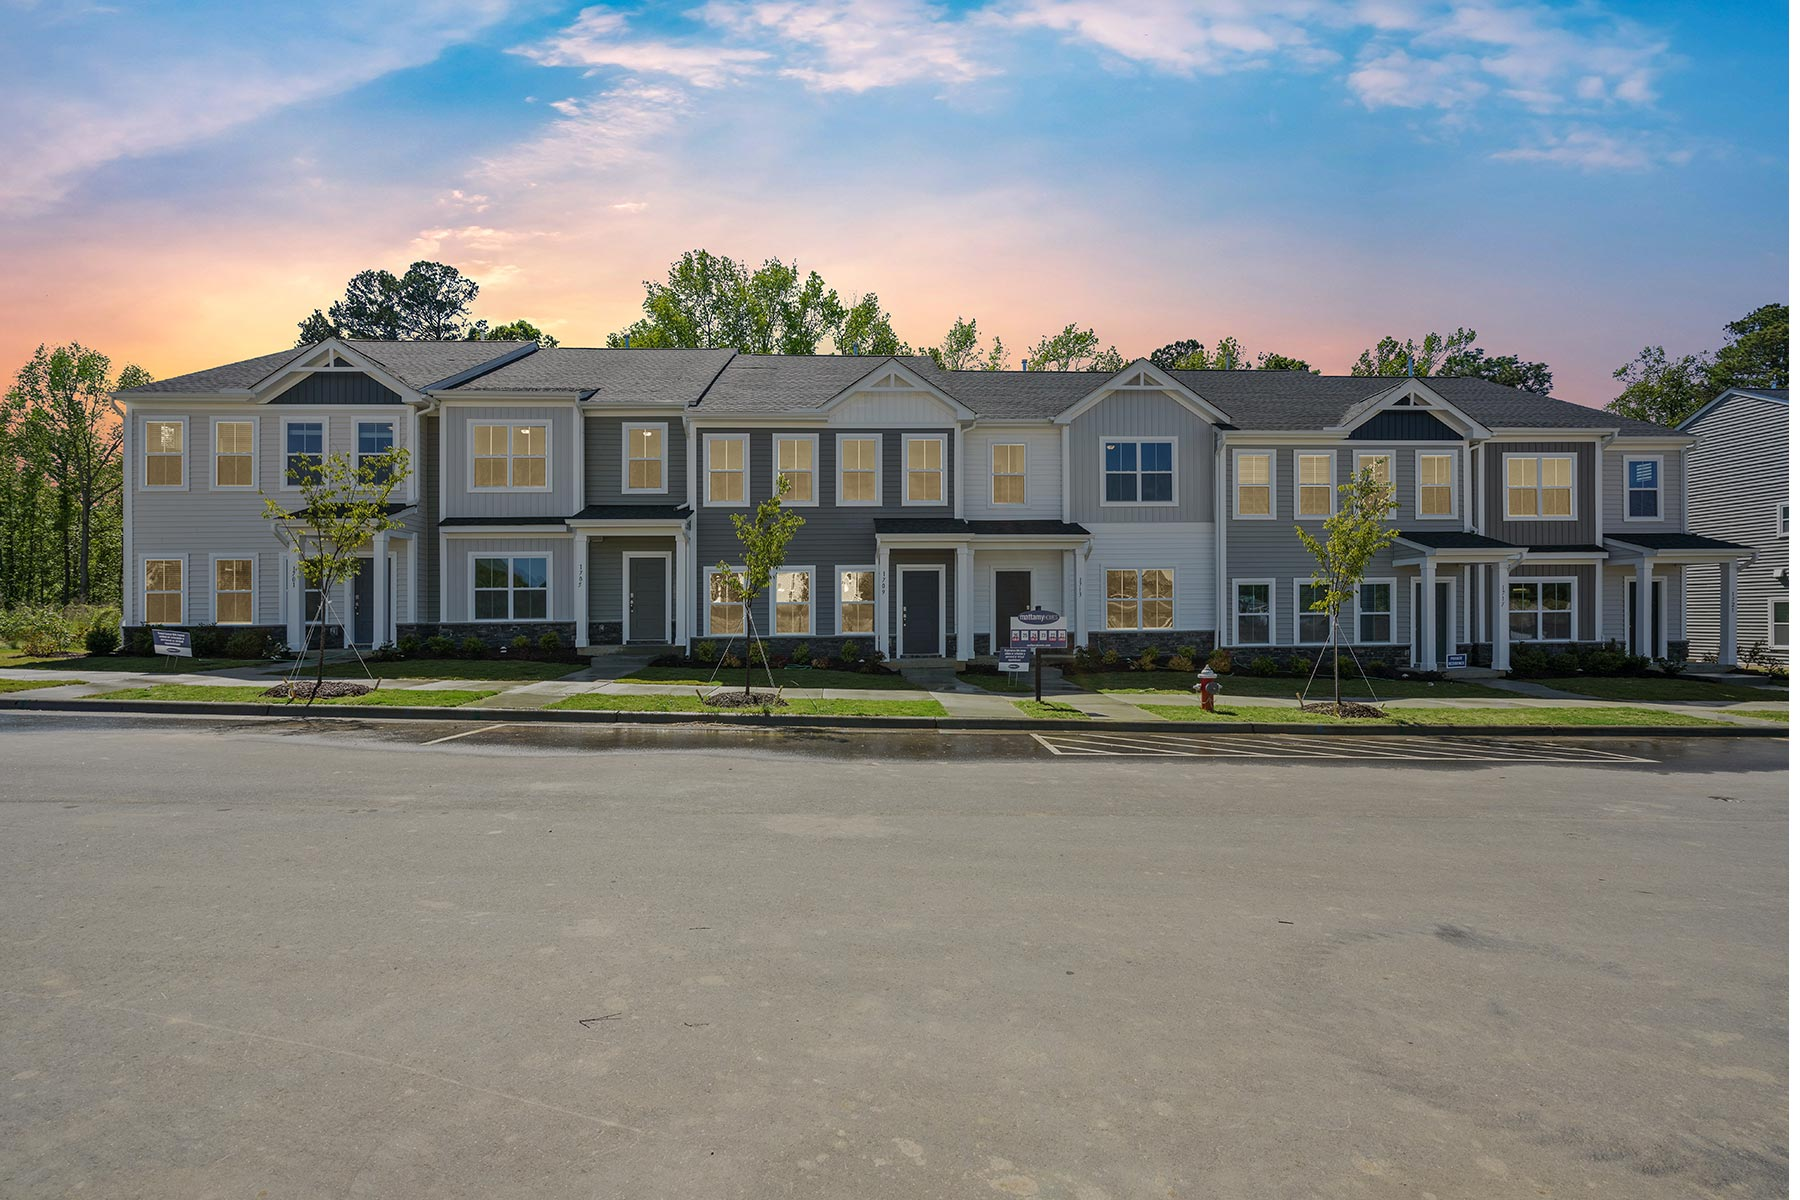 Bengal Townes Elevation Front in Fuquay-Varina North Carolina by Mattamy Homes